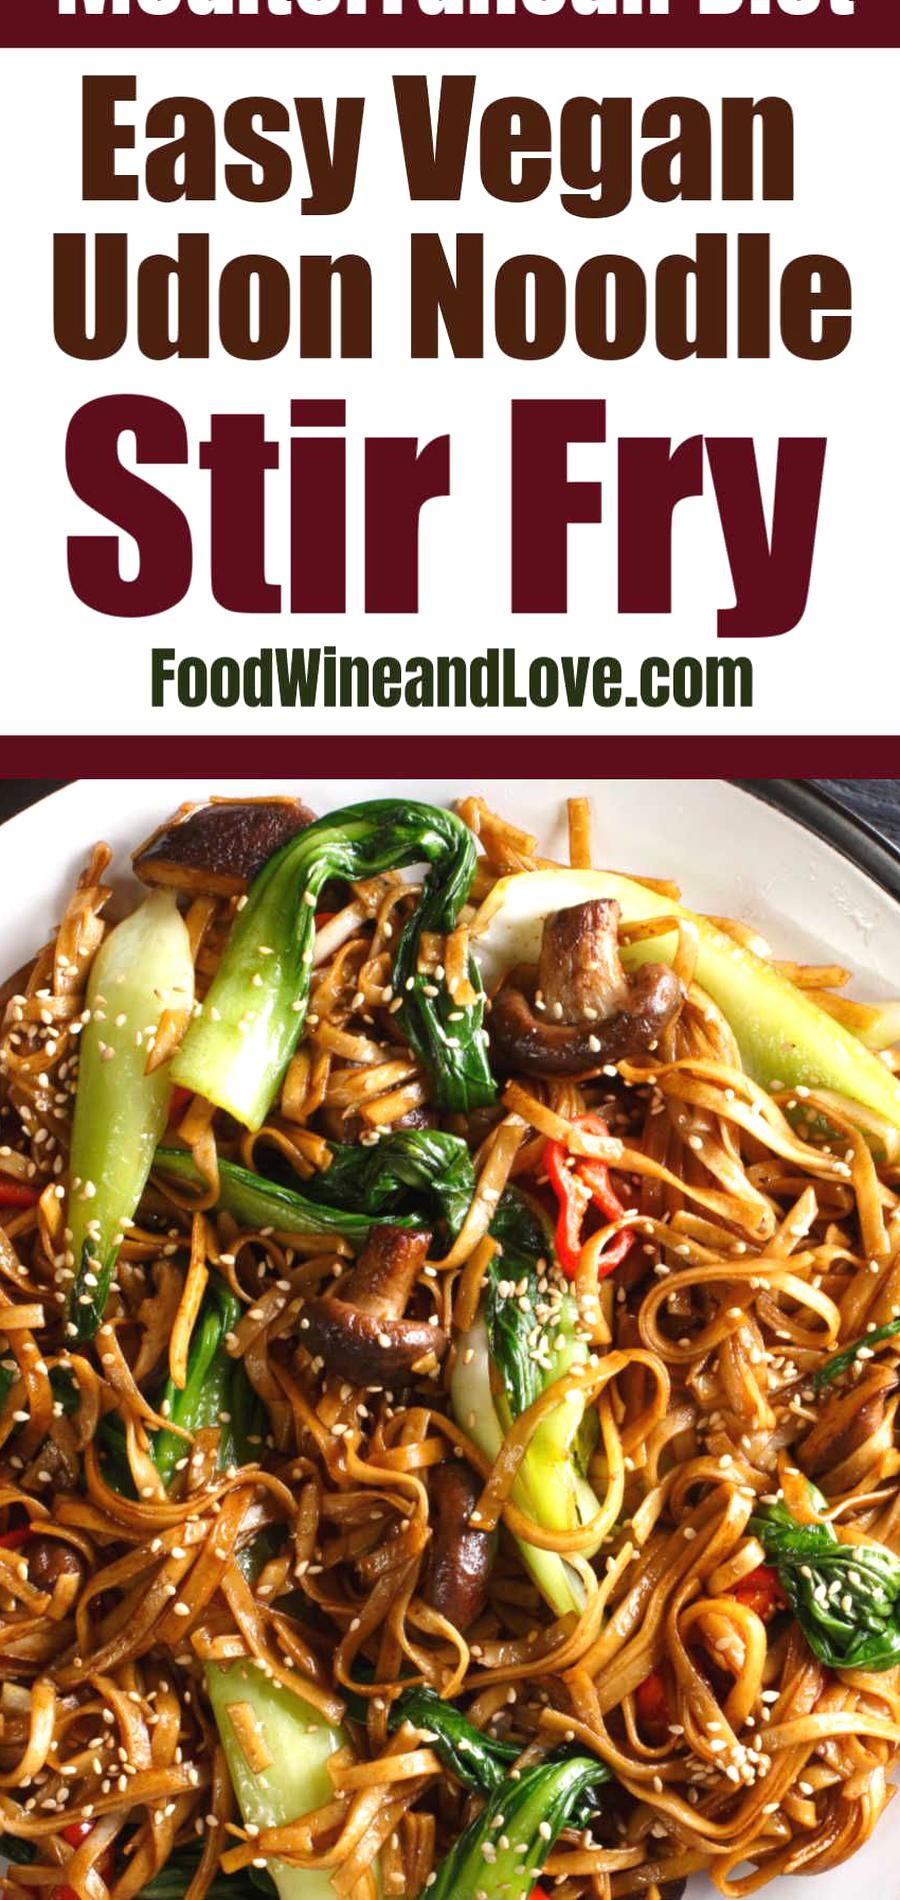 Vegan Udon Noodle Stir Fry This Easy And Delicious Recipe Is Vegan And Friendly To The Mediterranean Diet Better In 2020 Vegan Udon Vegetarian Udon Vegan Udon Noodles